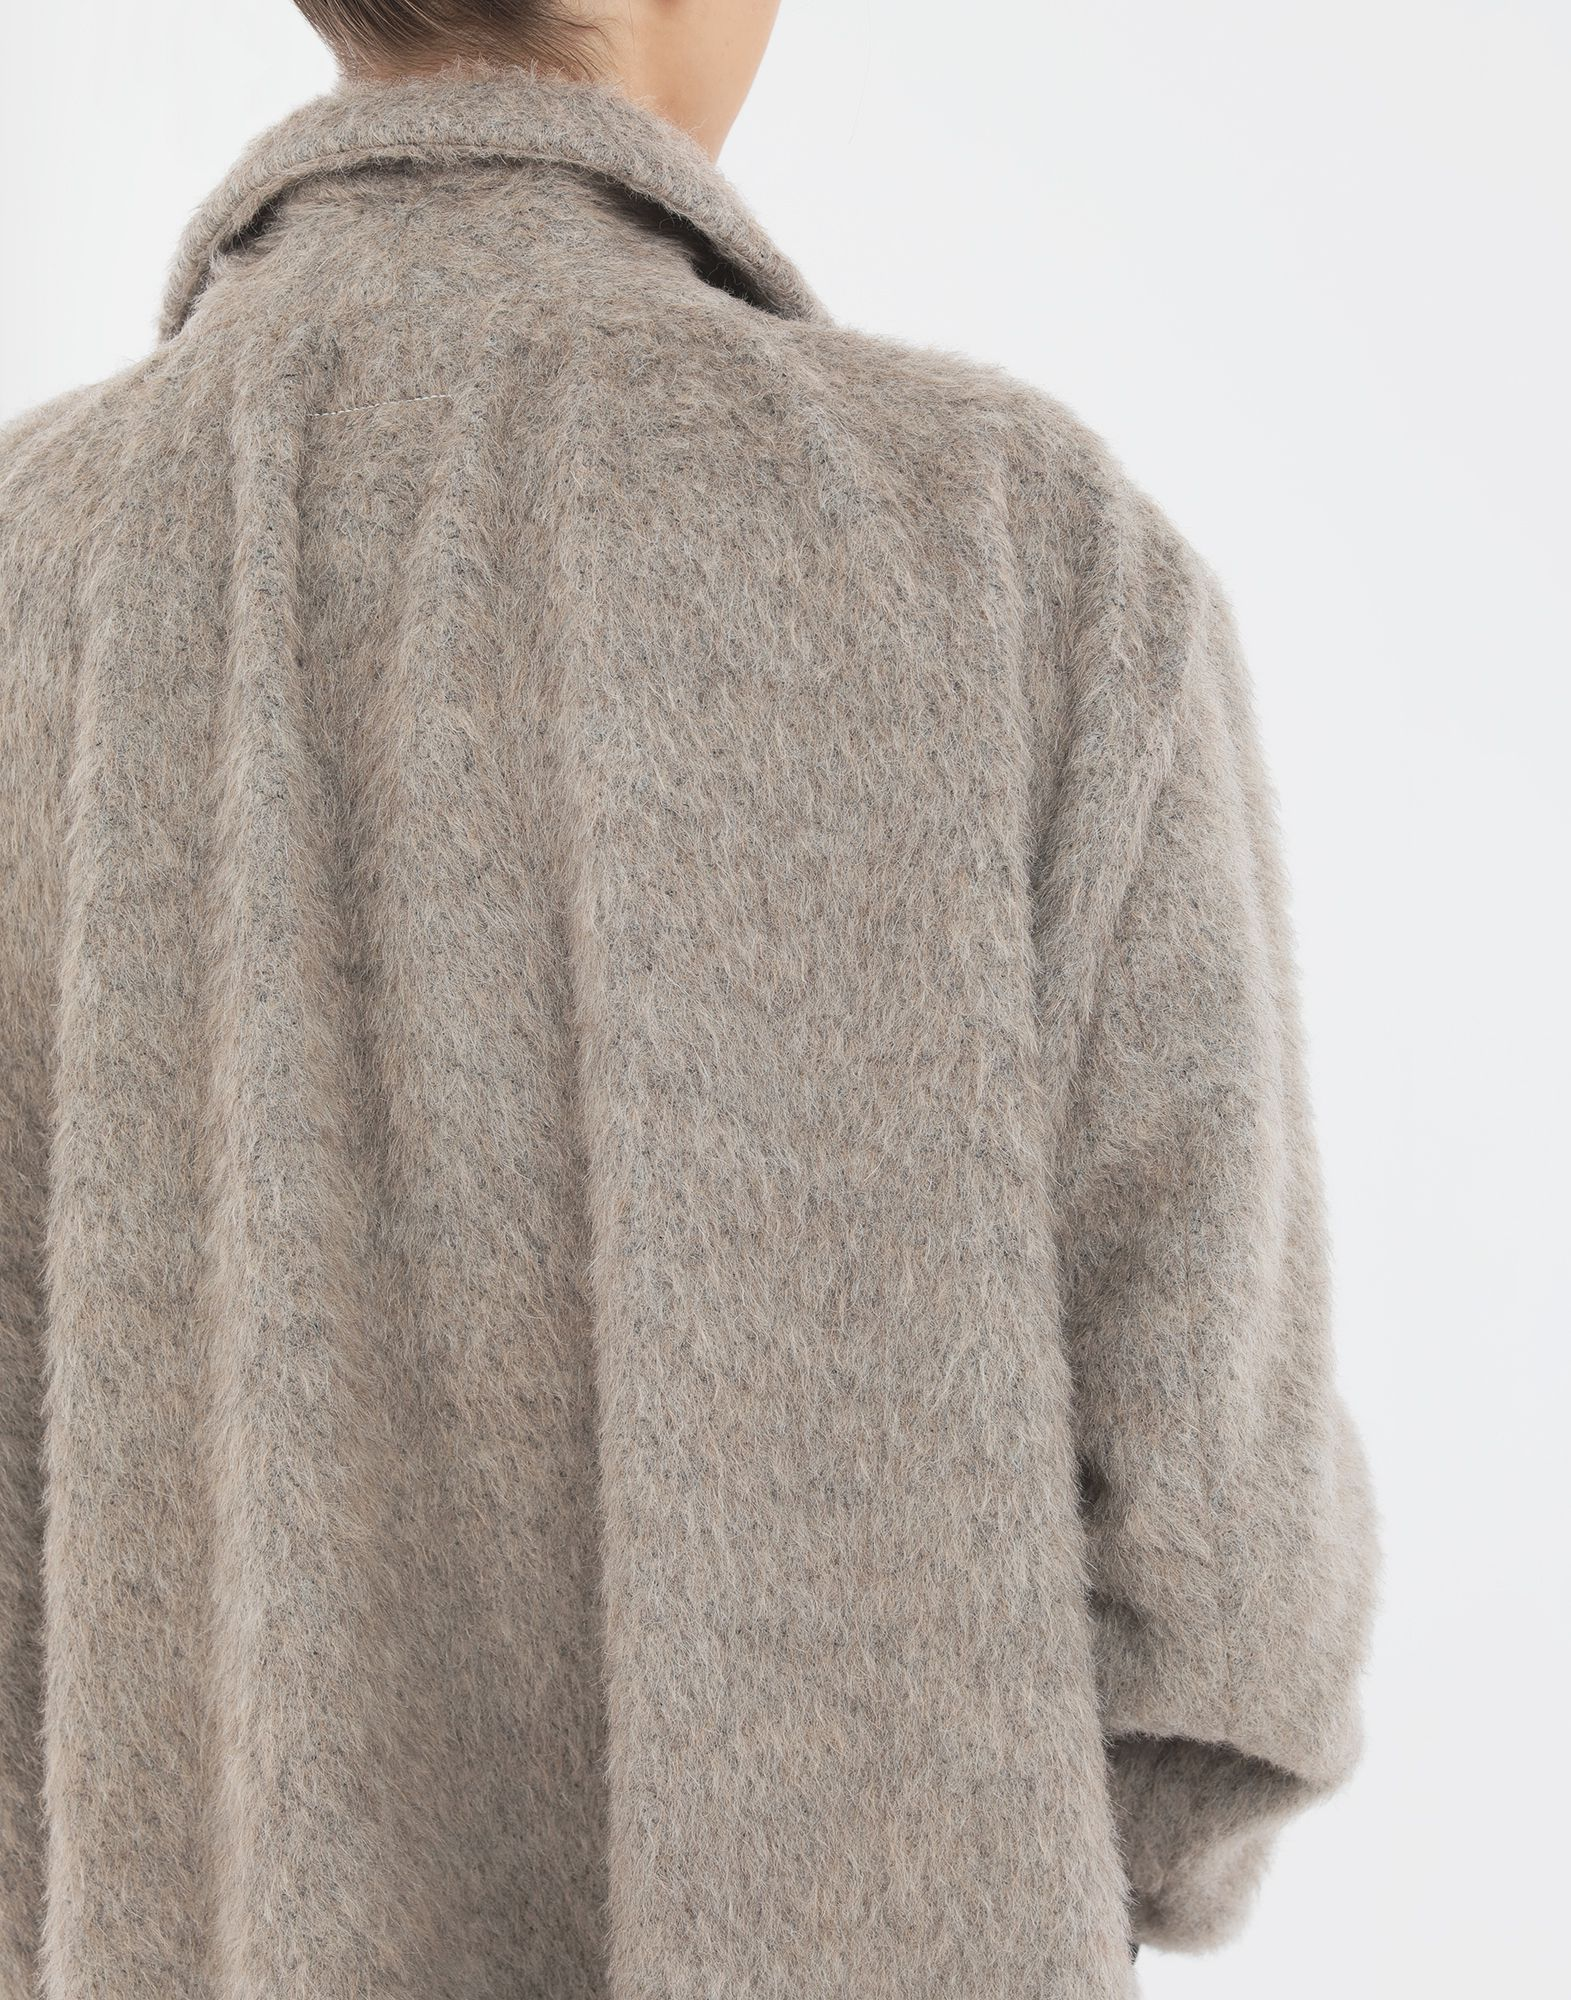 MM6 MAISON MARGIELA Mohair coat Coat Woman b